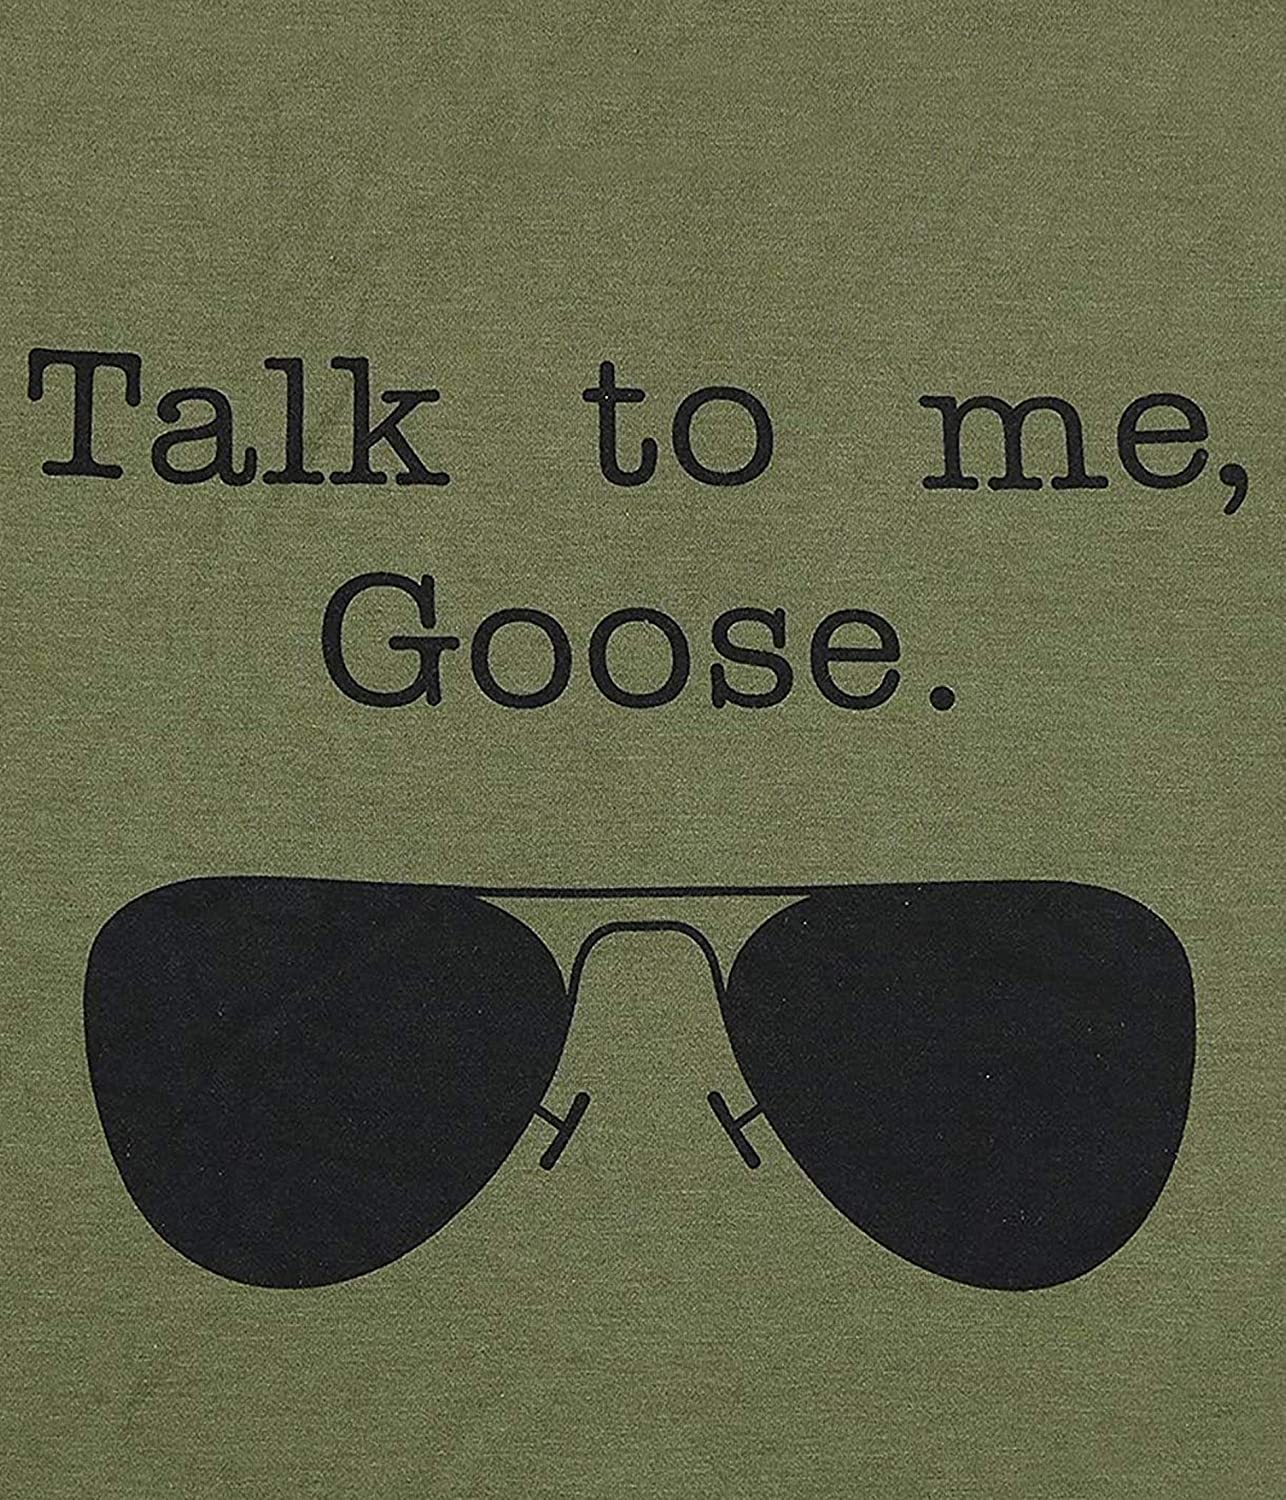 Amazon.com: Talk to Me Goose - Gafas de sol para mujer ...